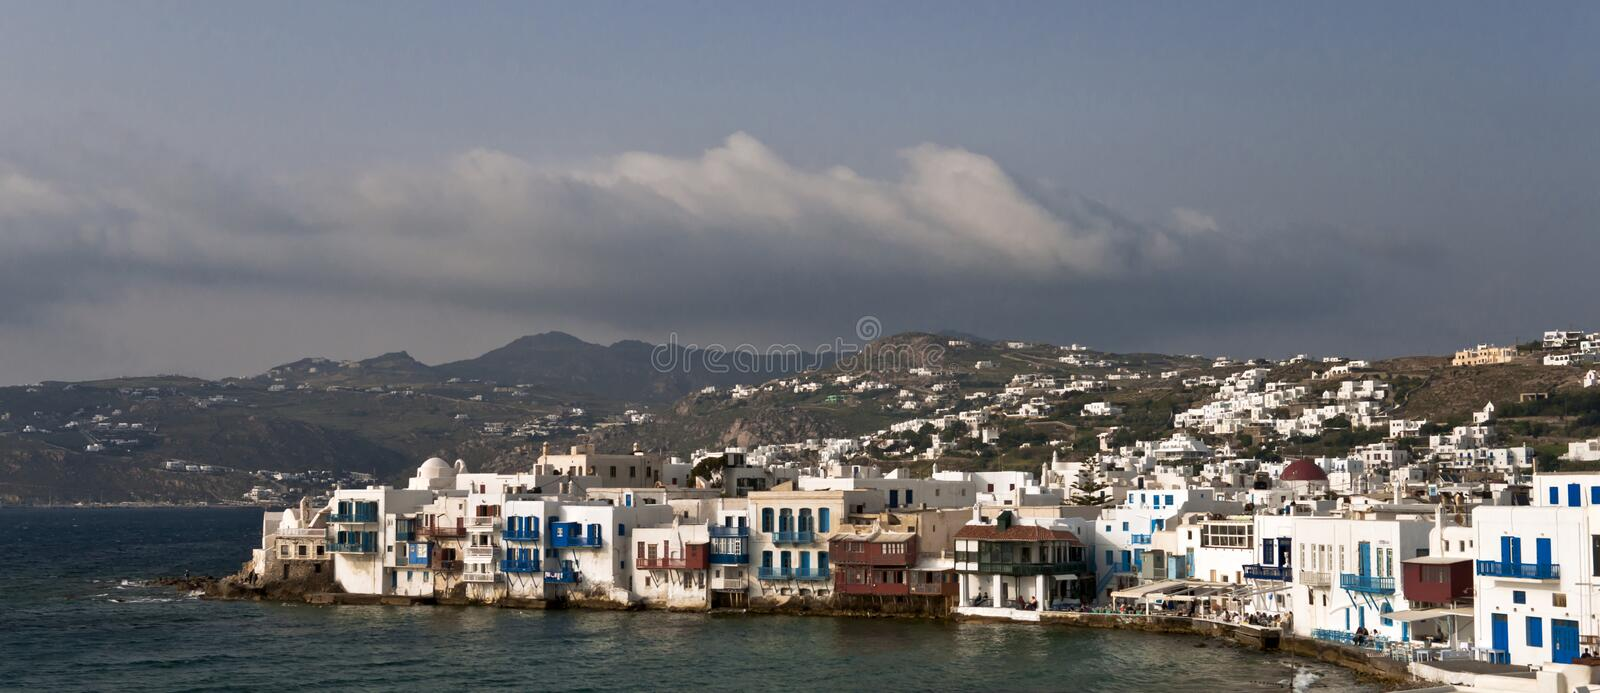 Small Venice houses. Mykonos view with Small Venice houses stock photography